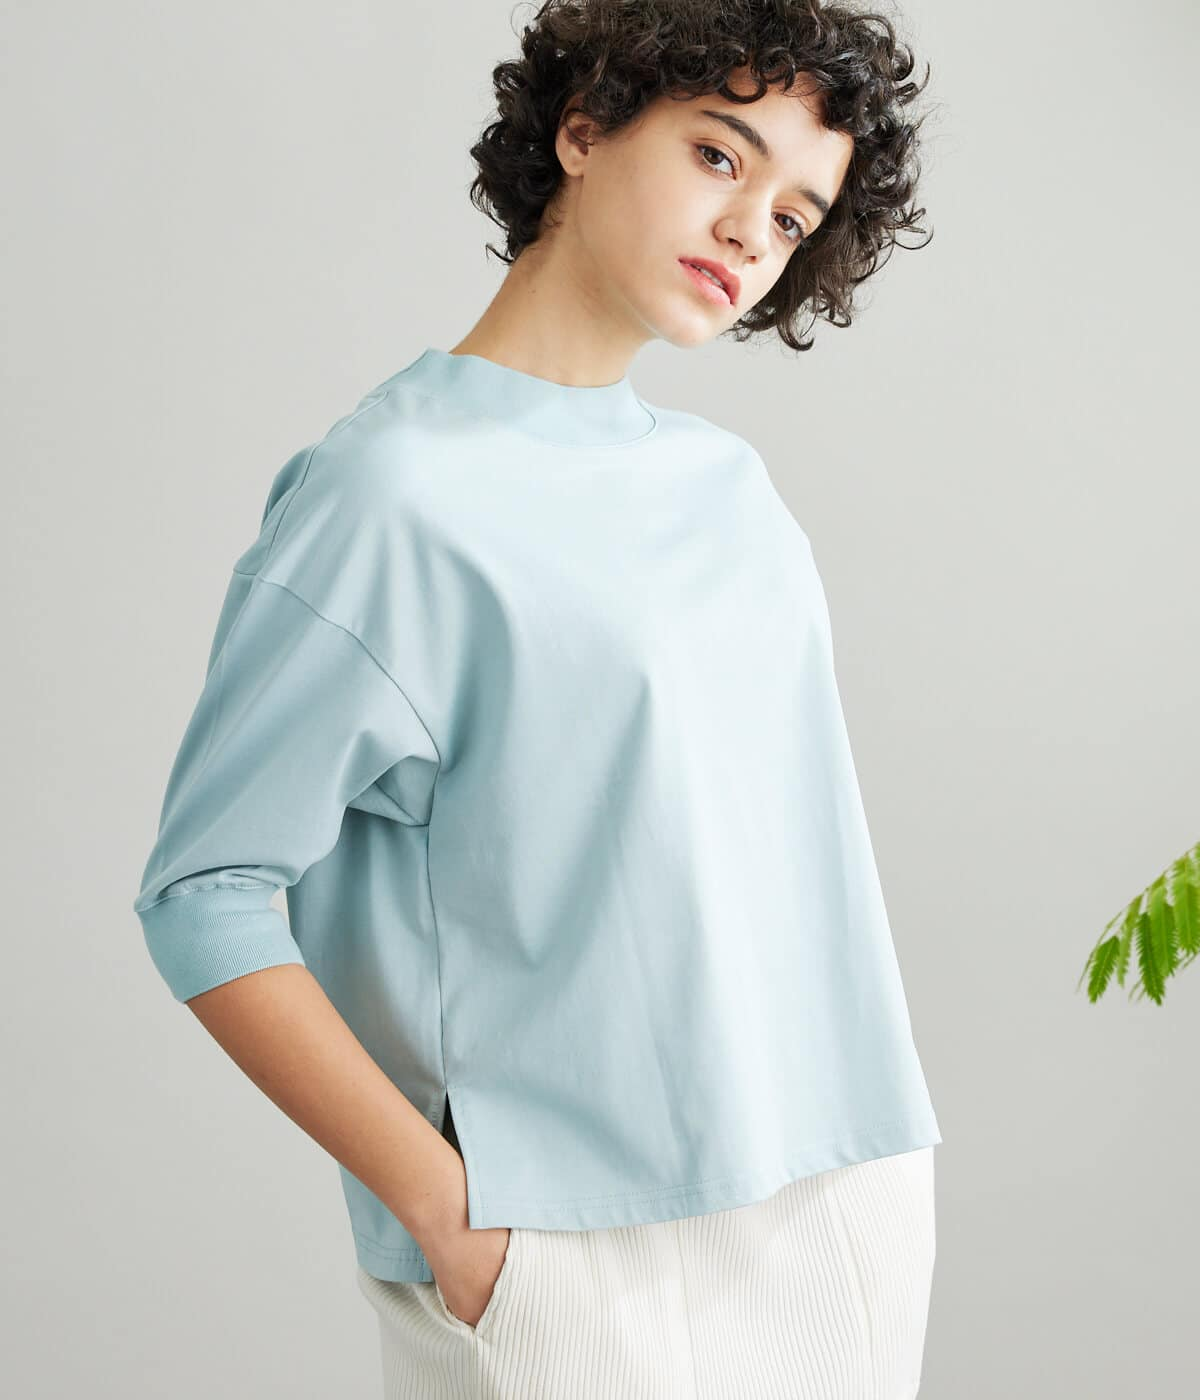 [Lotus] Suvin Cotton Plating Jersey モックネックカットソー